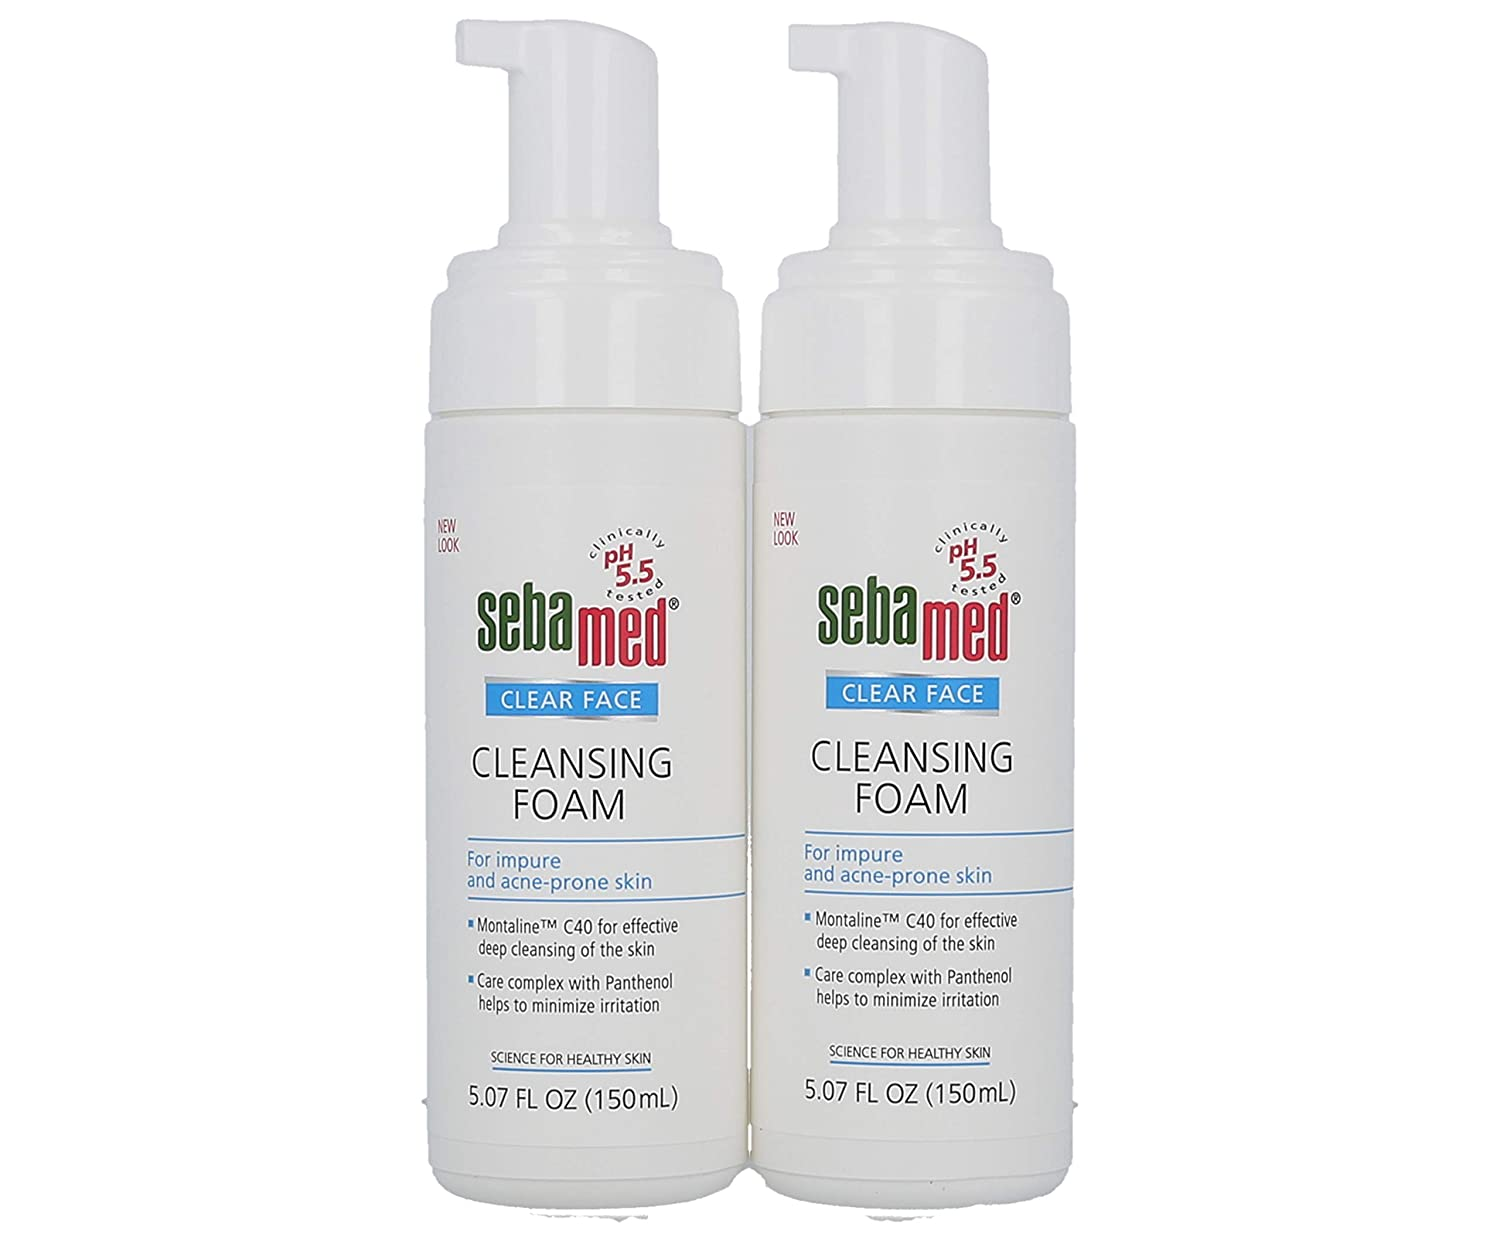 Sebamed Clear Face Cleansing Foam Gentle Face Wash for Impure Oily and Acne-prone Skin 5.07 Fluid Ounces (Pack of 2)